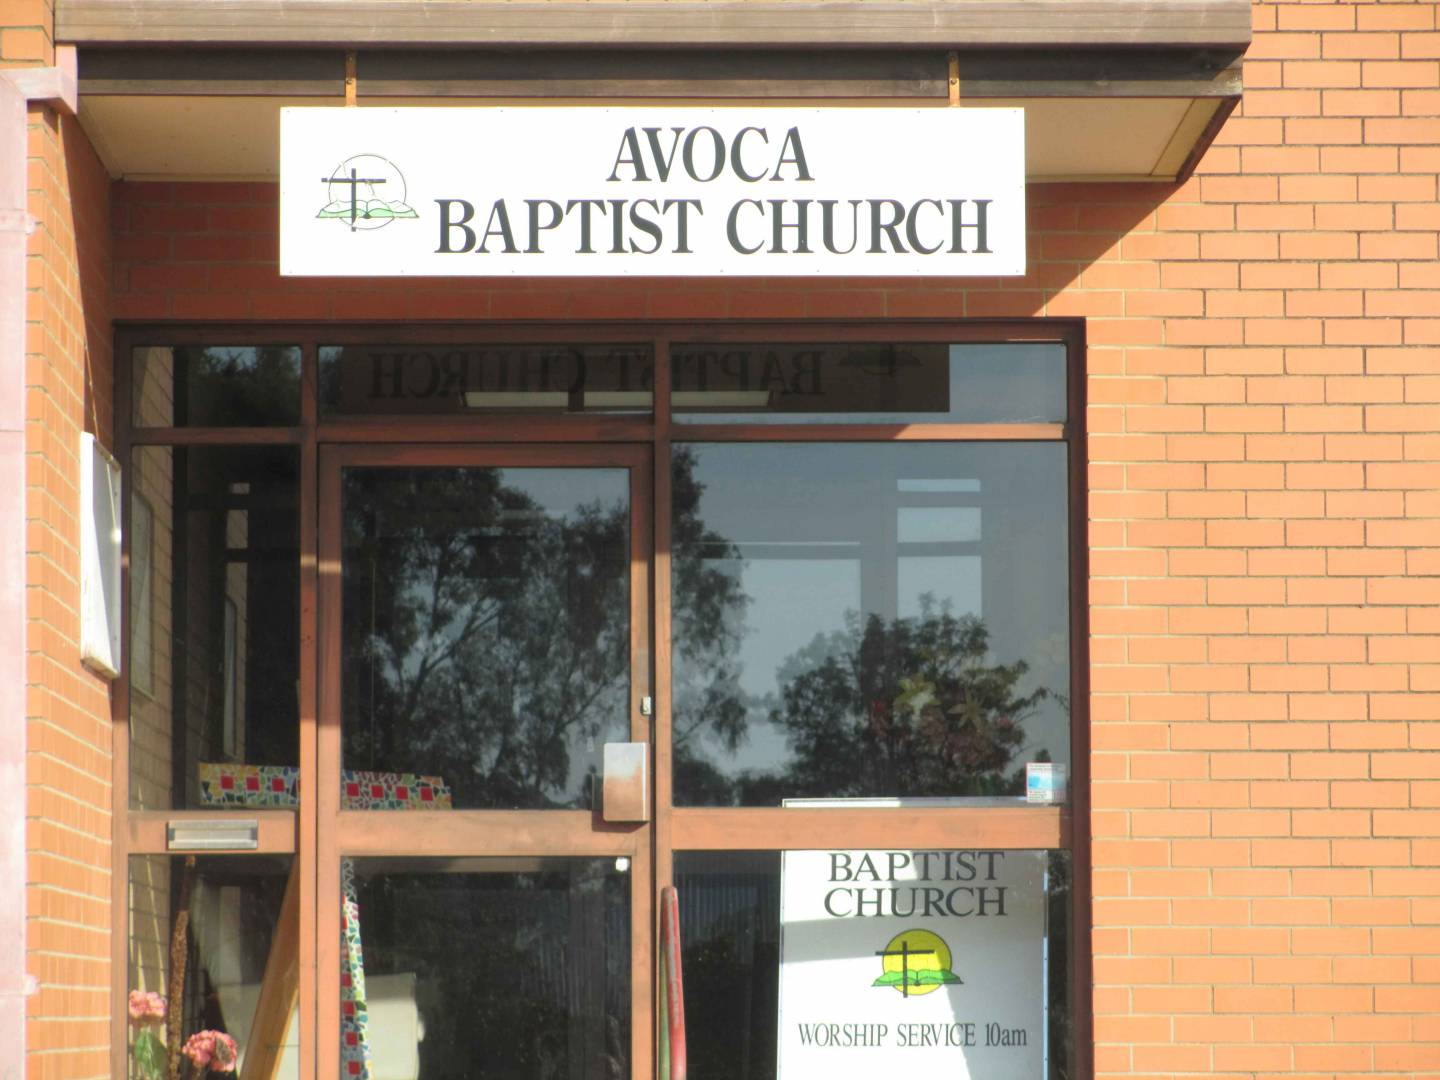 Avoca Baptist Church